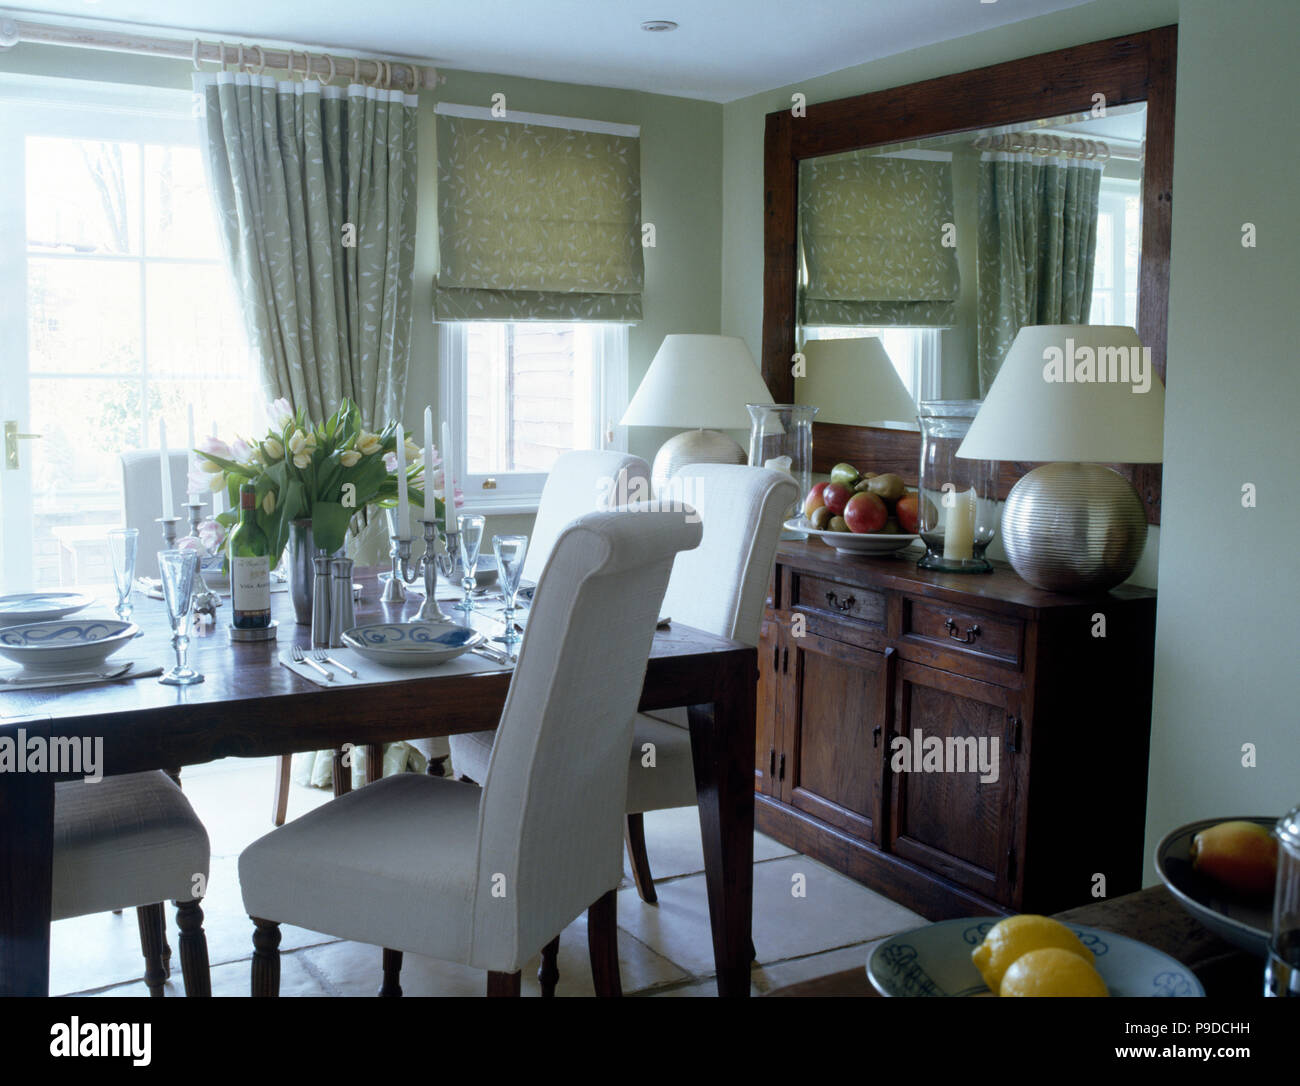 White Upholstered Chairs At Table Set For Lunch In Townhouse Dining Room  With Large Mirror Above Sideboard